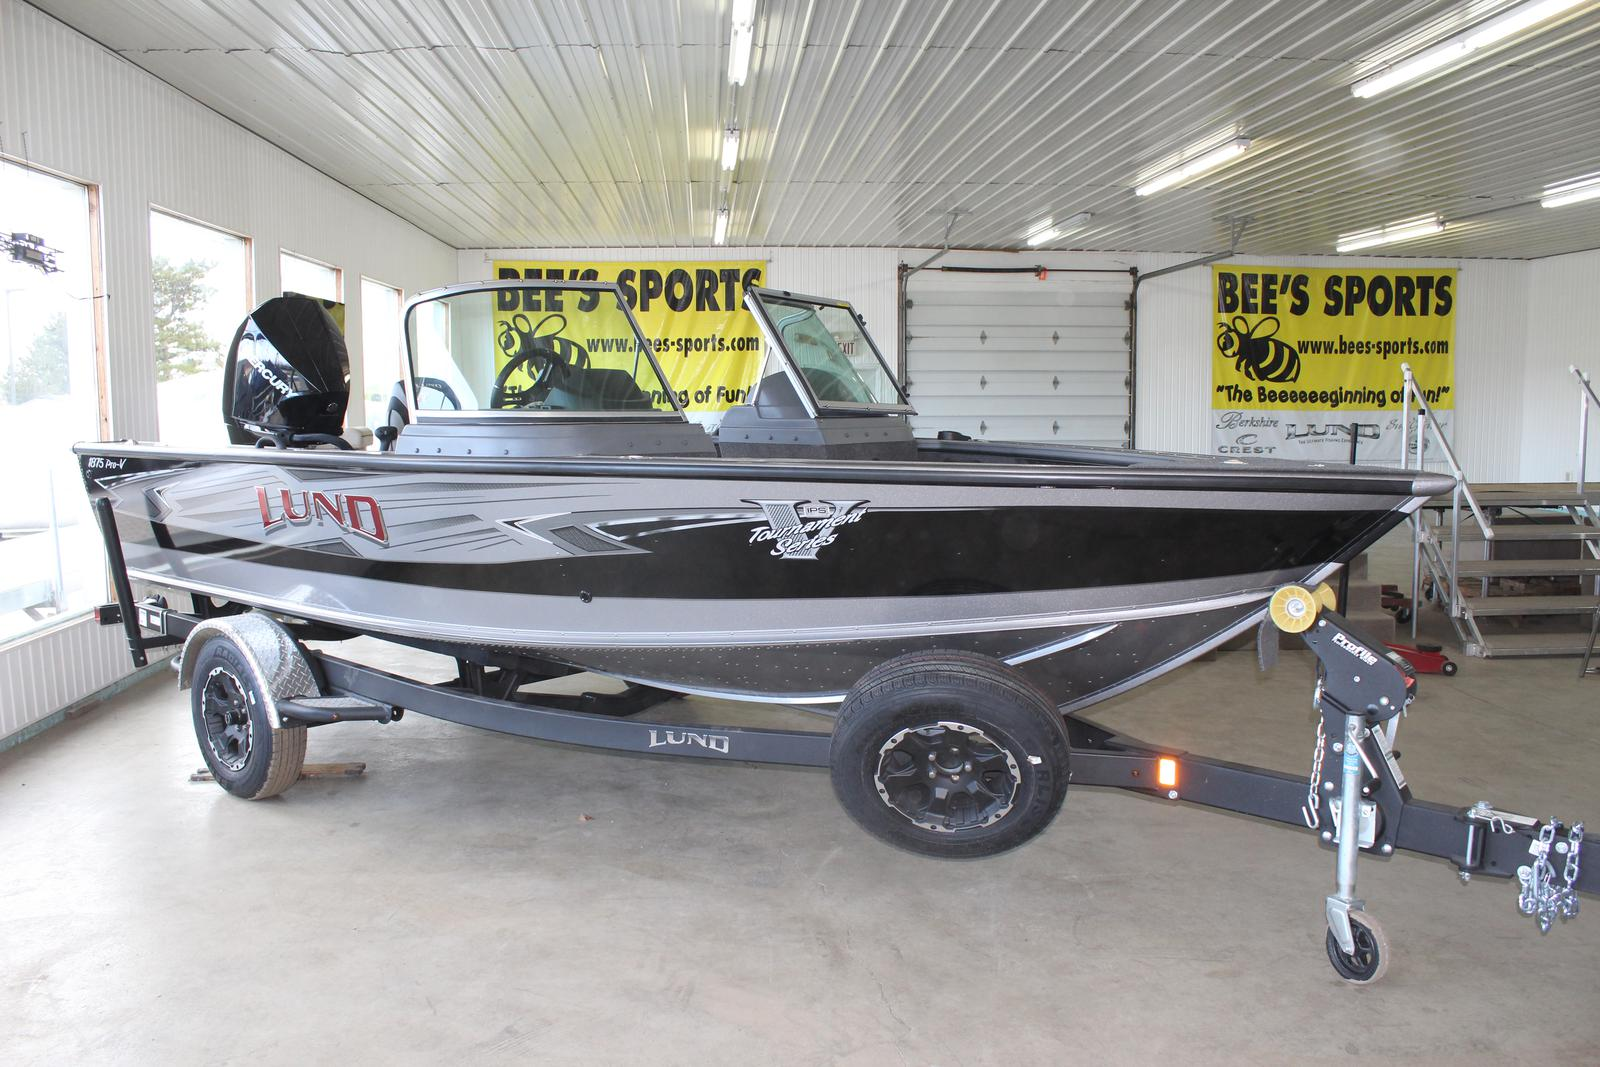 Inventory from Lund Bee's Sports St  Johns, MI (800) 233-7720